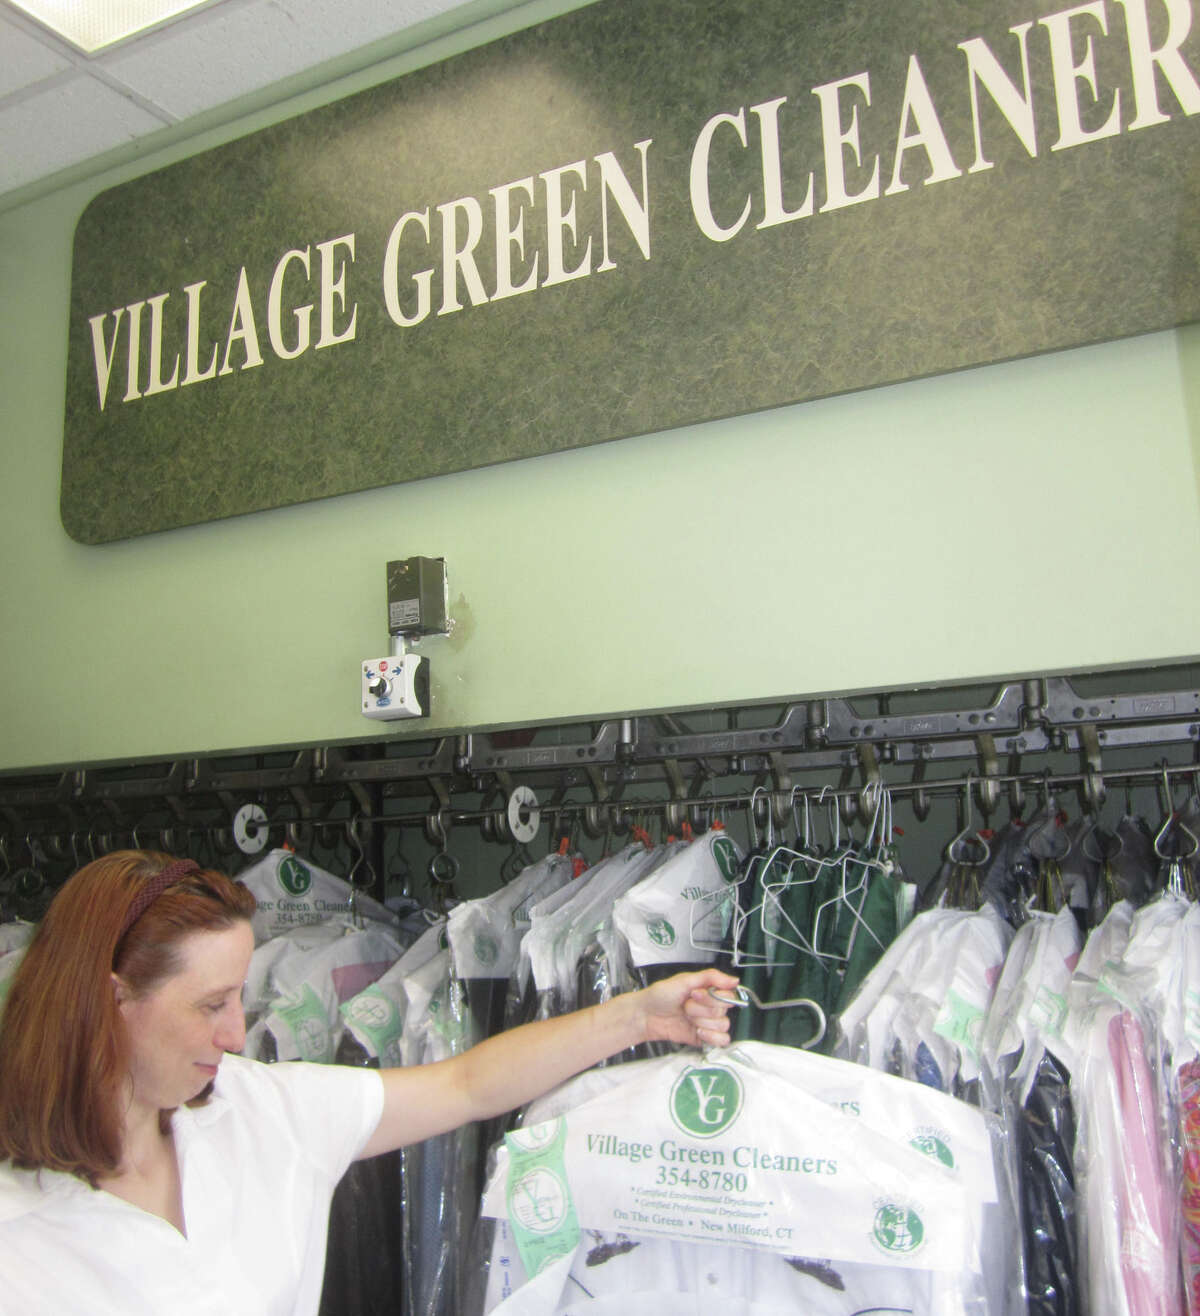 Lynn Potter, a longtime staffer at the Village Green Cleaners in New Milford, is a familiar and friendly face to the shop's many patrons. October 2013